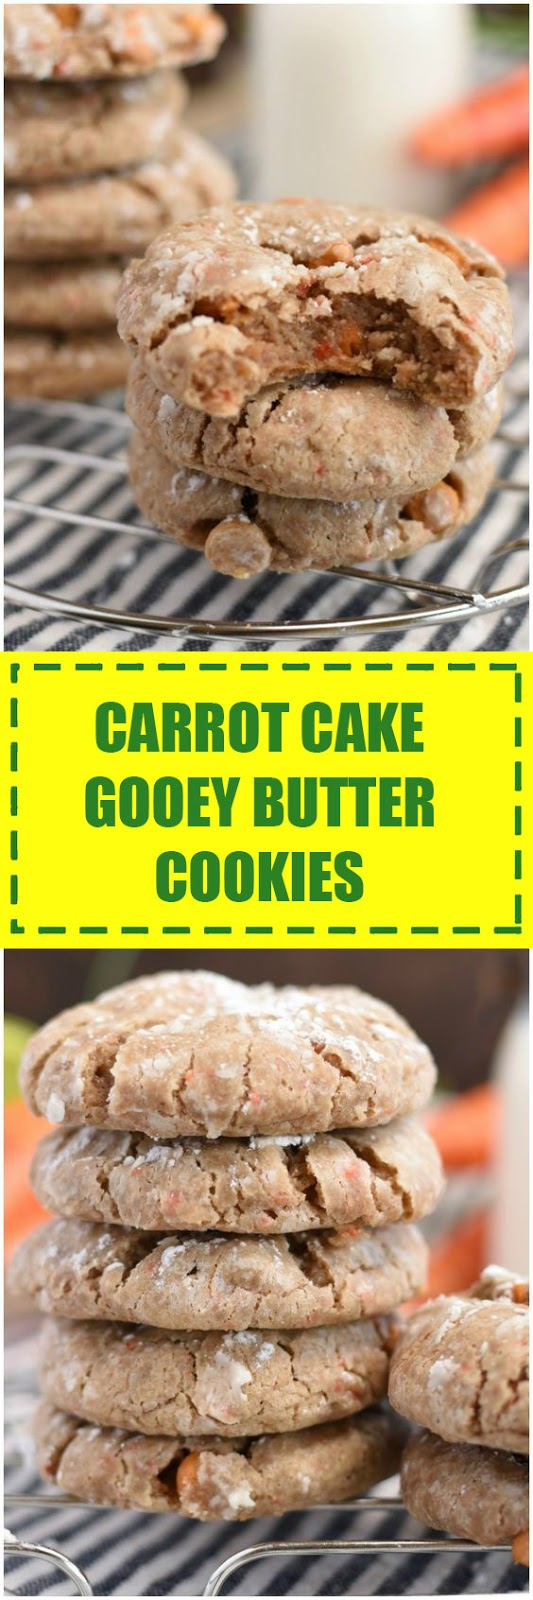 Carrot Cake Gooey Butter Cookies